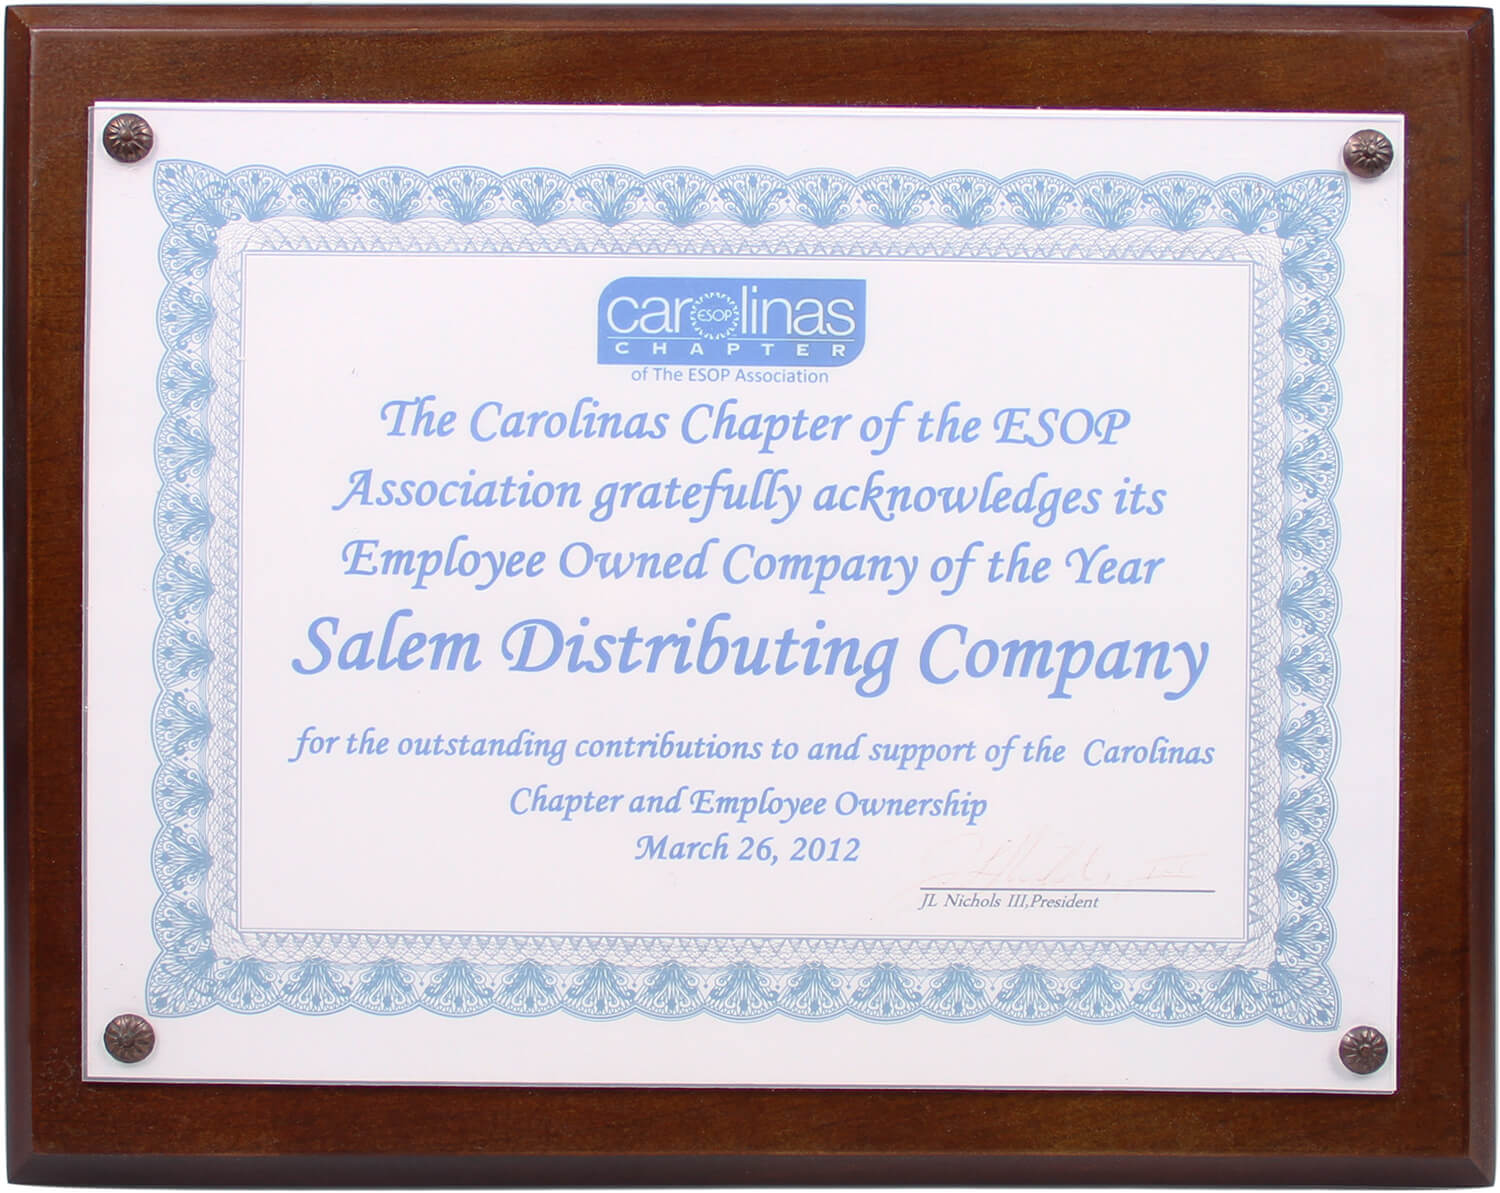 ESOP Company of the Year 2012